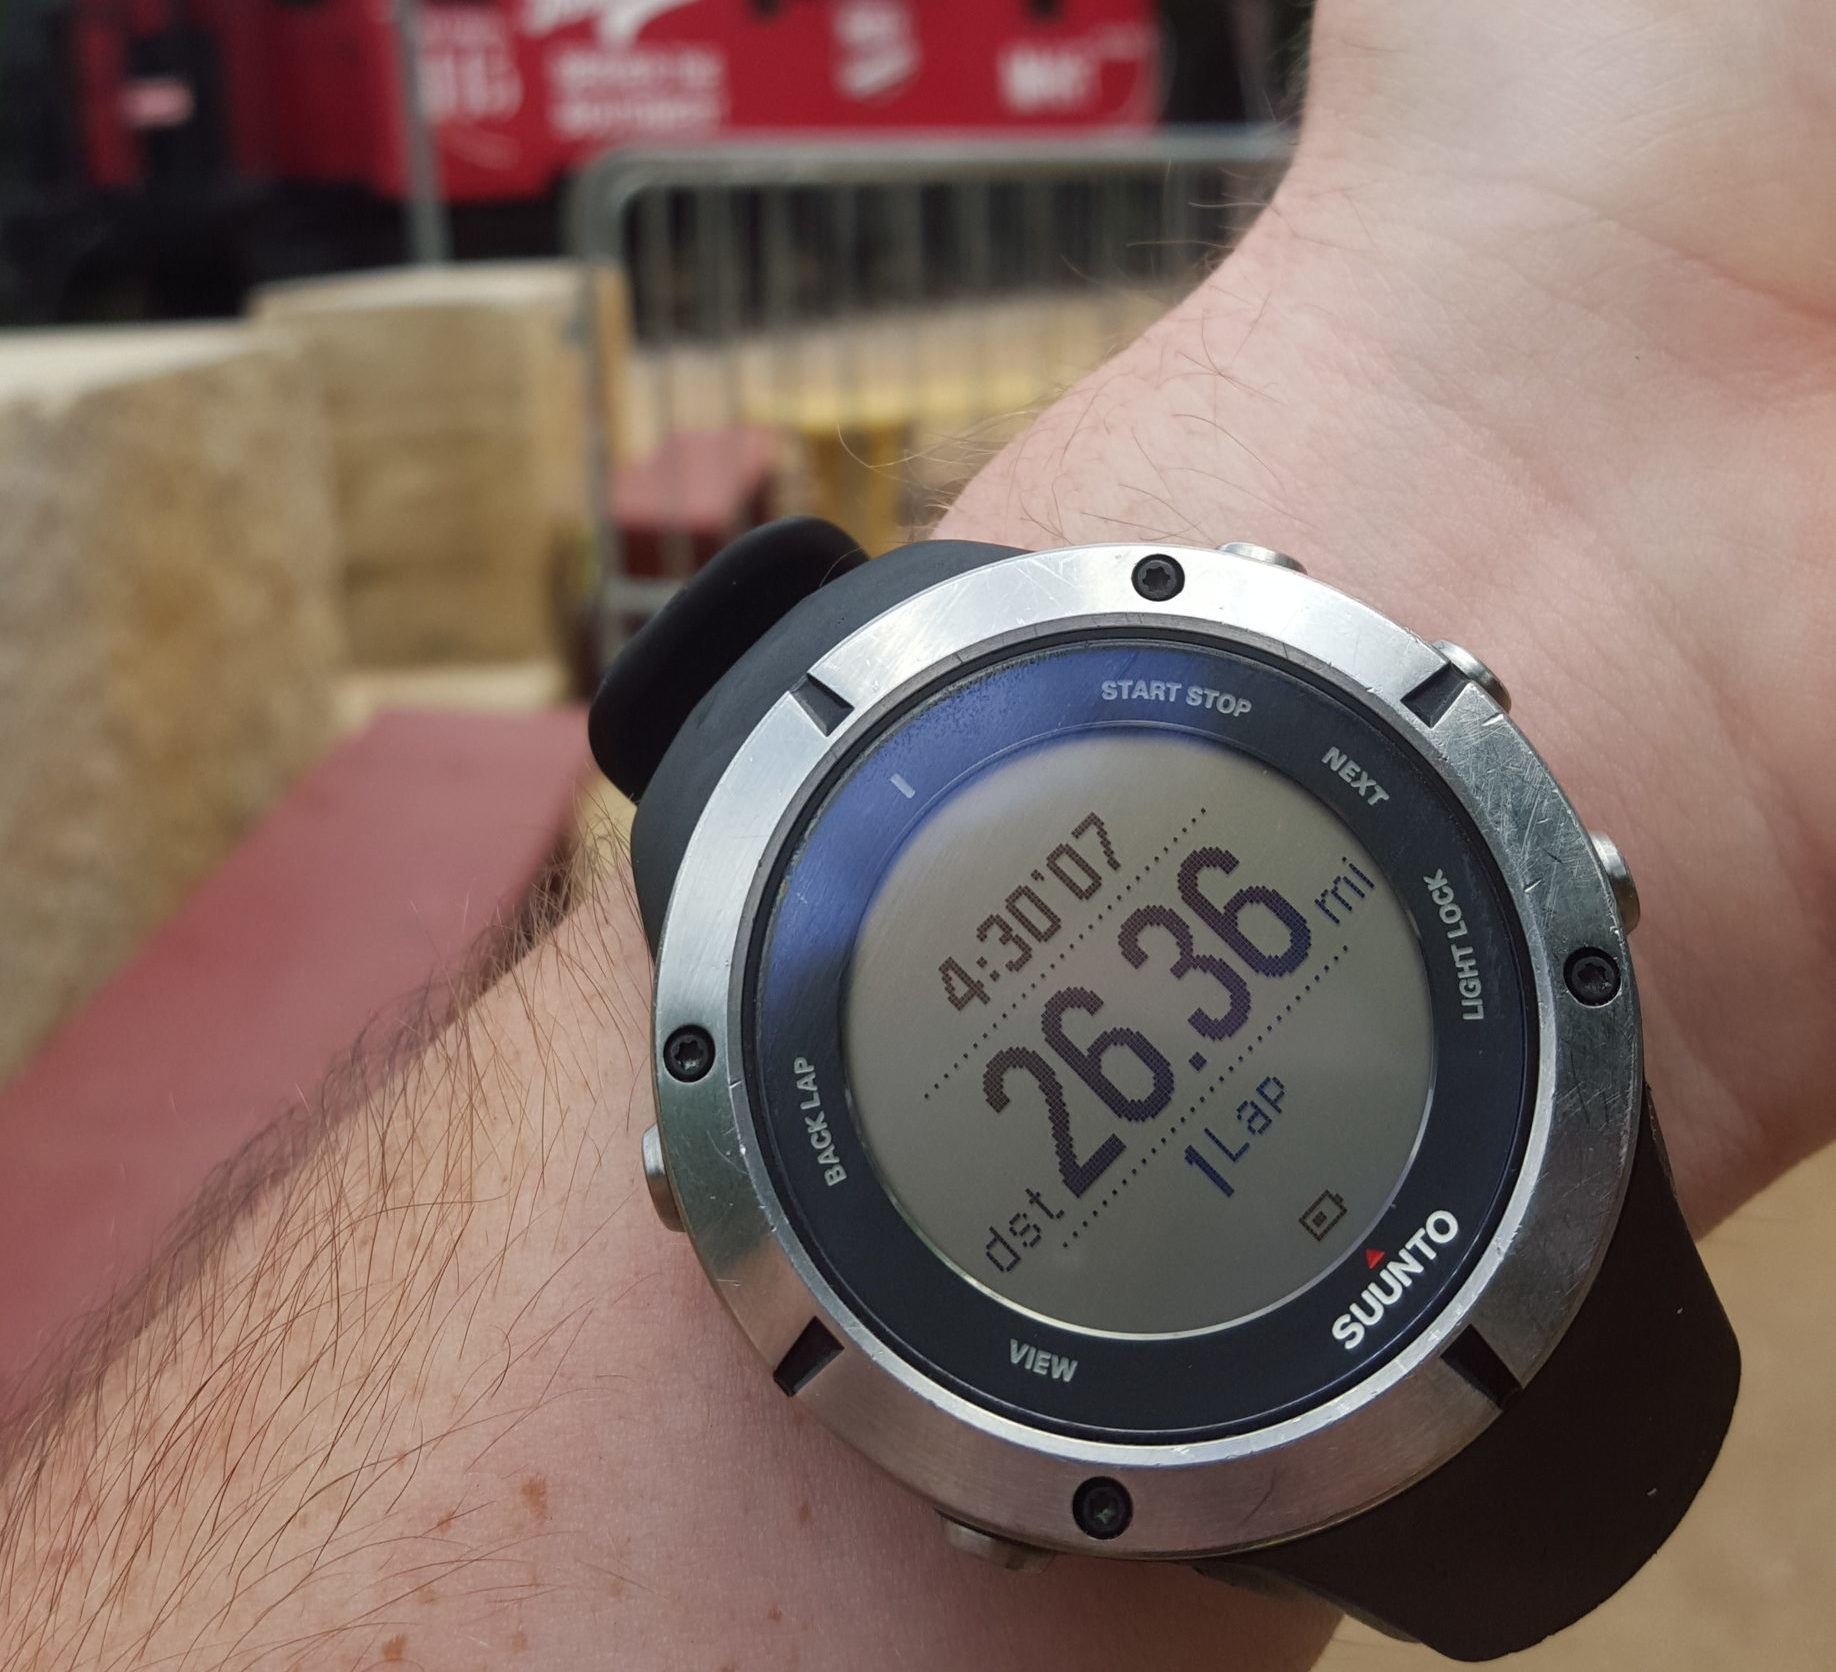 10 Things To Consider When Purchasing A GPS Watch